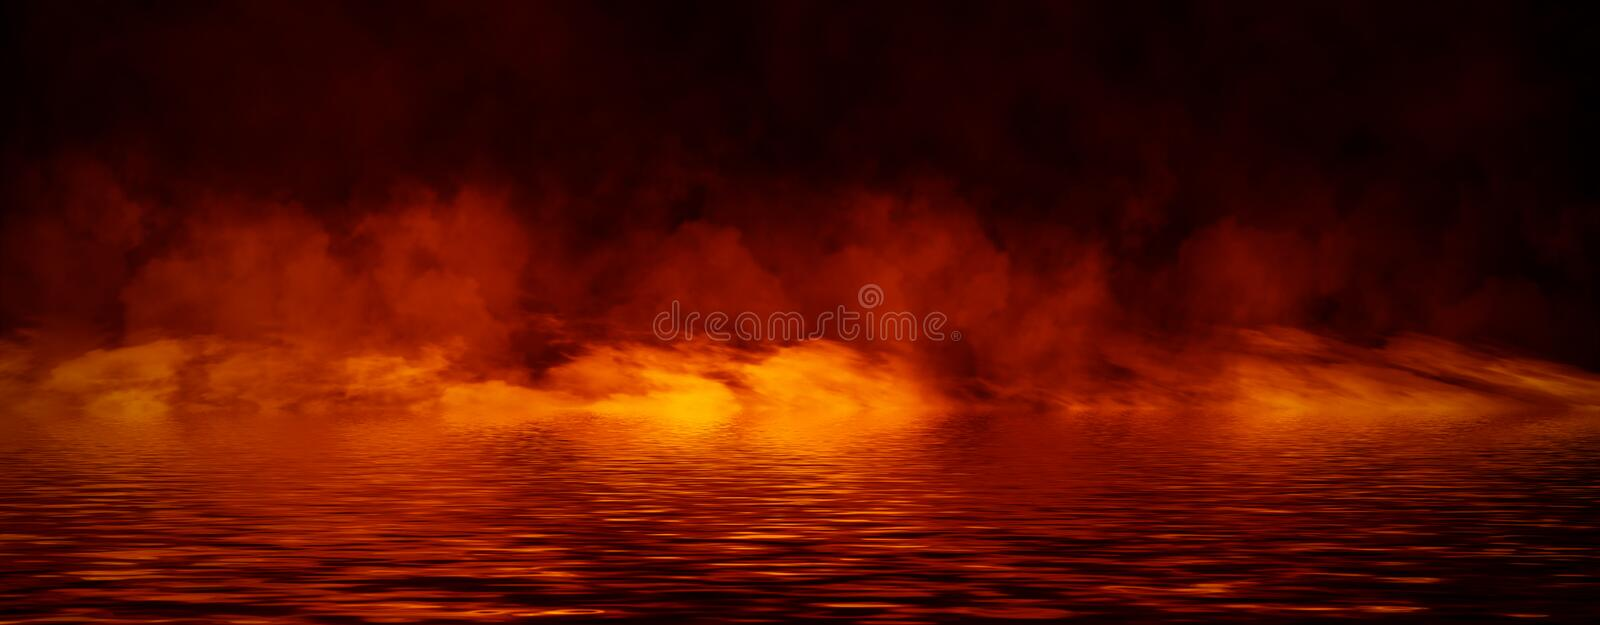 Panoramic view mystic smoke on the floor. Paranormal fog isolated on black background. Stock illustration. Reflection on water royalty free stock images